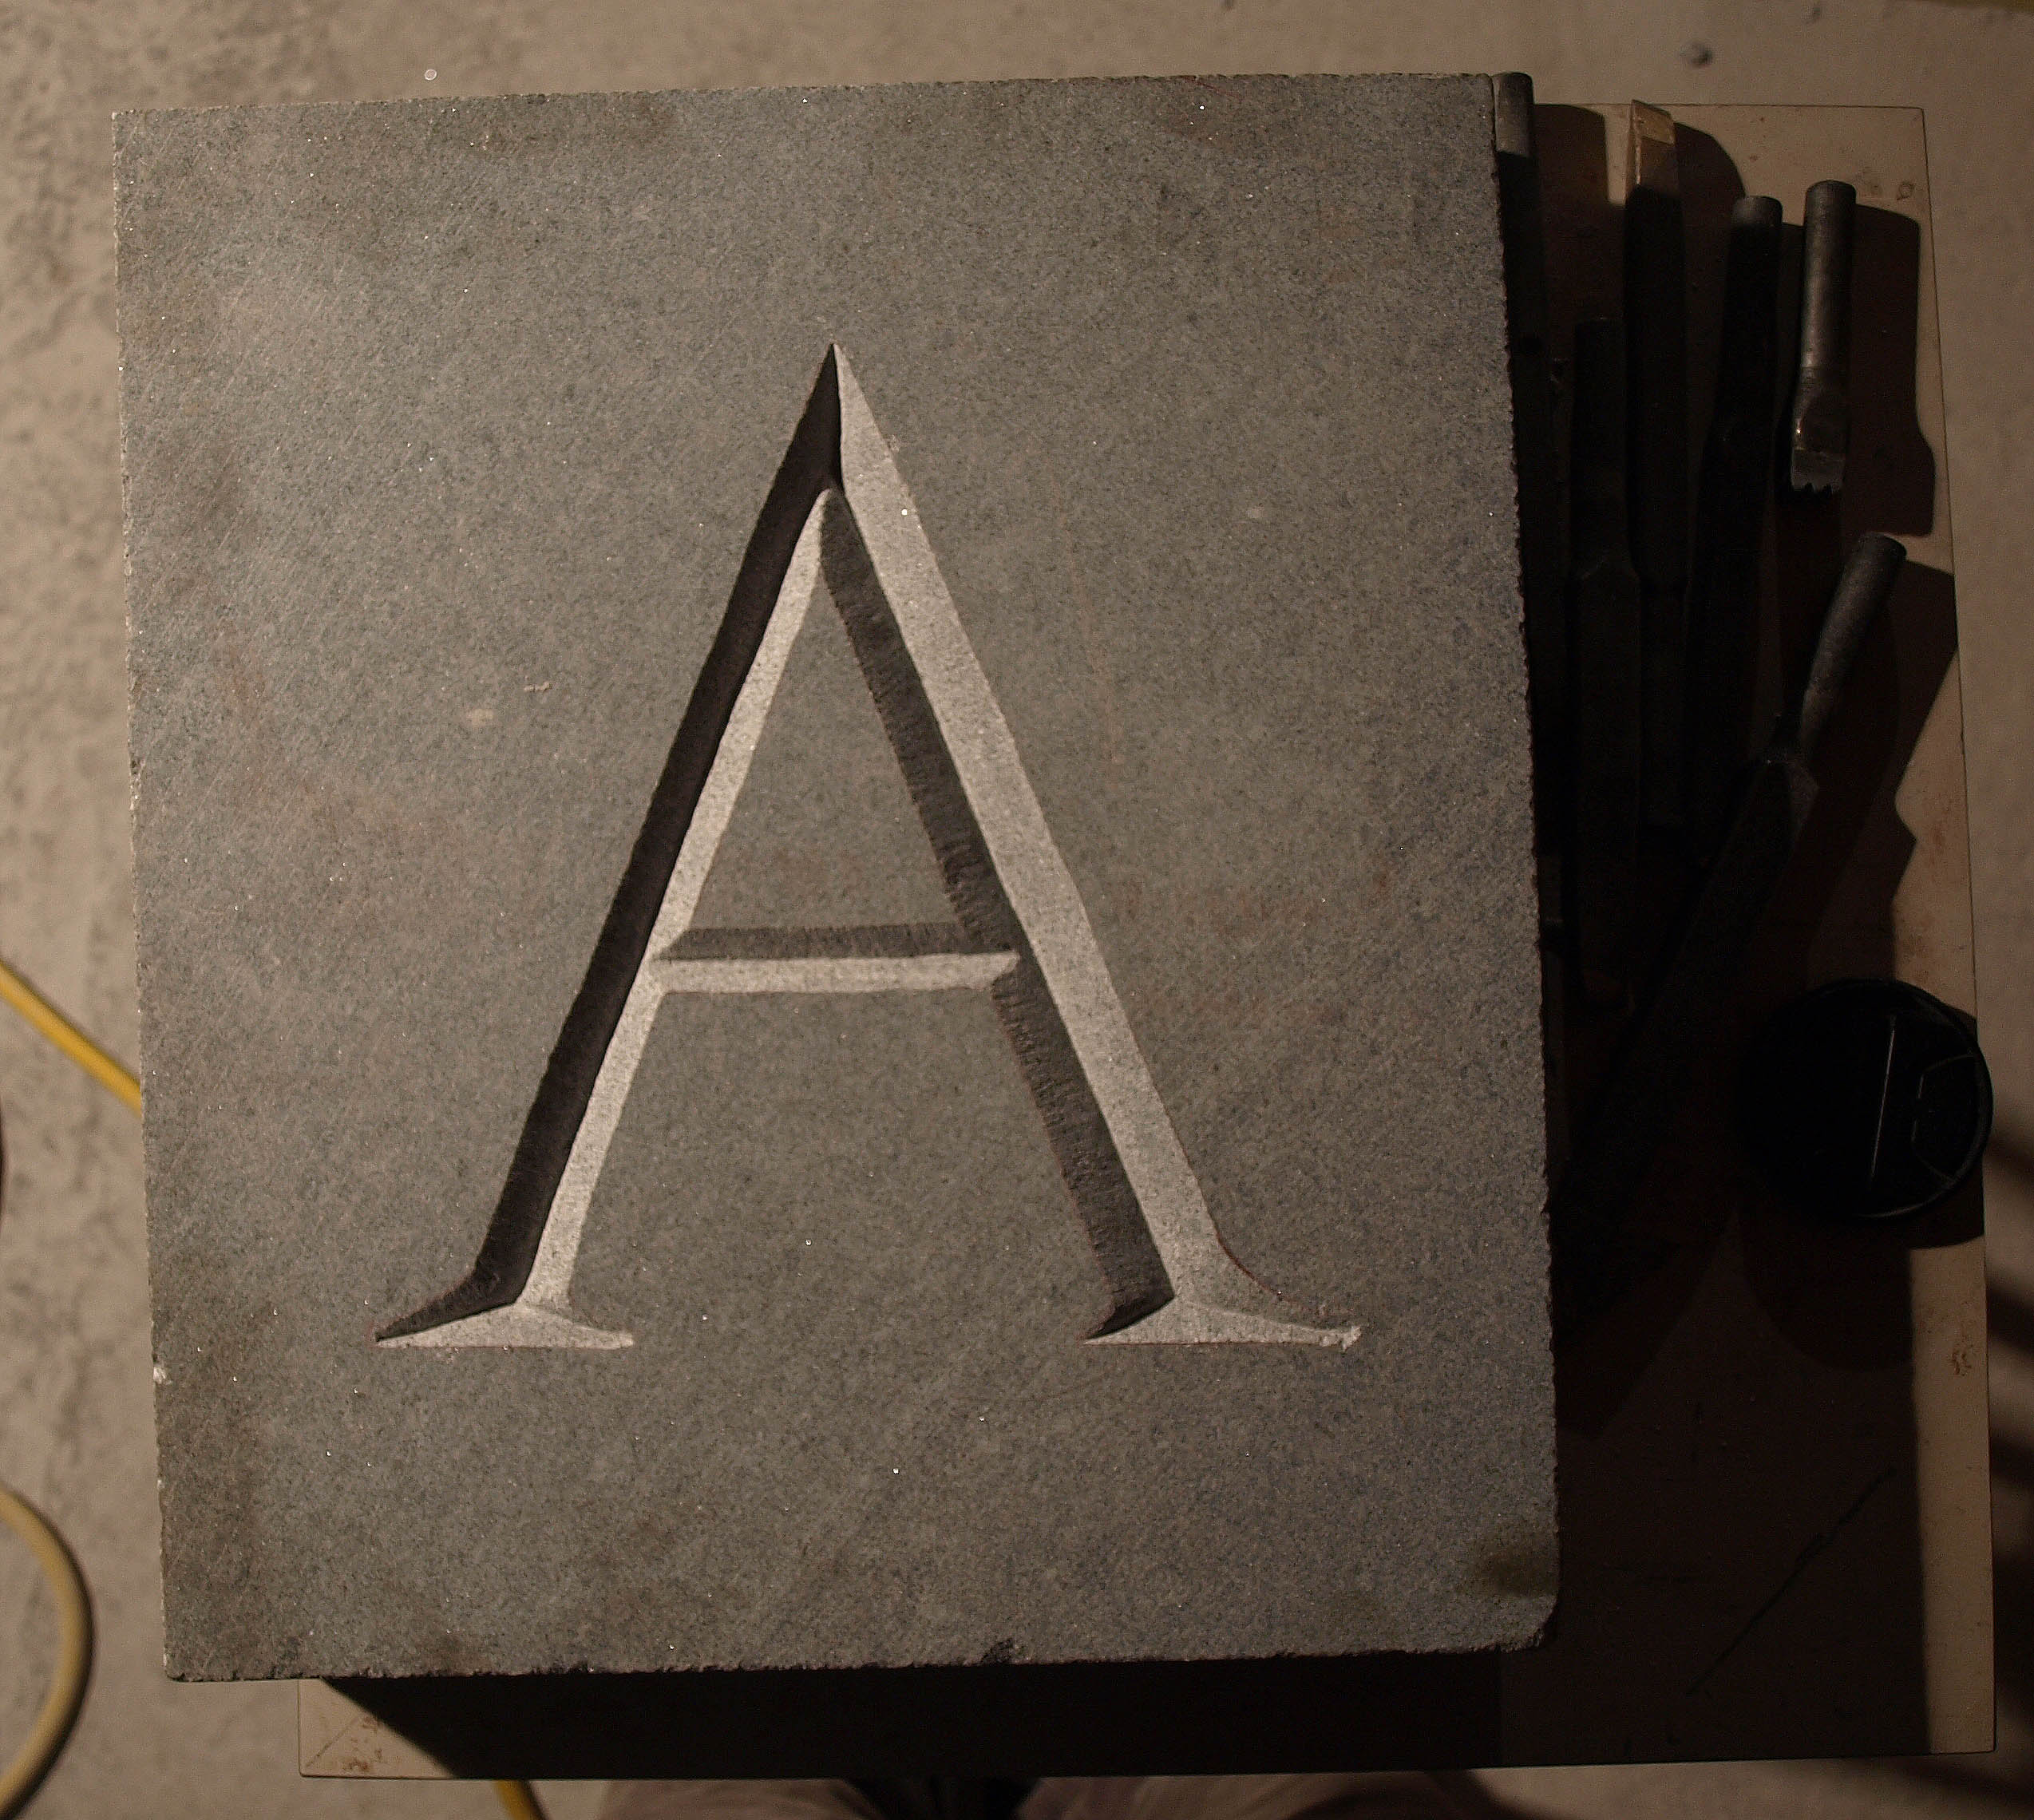 carving letters in stone sean hunter williams With stone letter carving